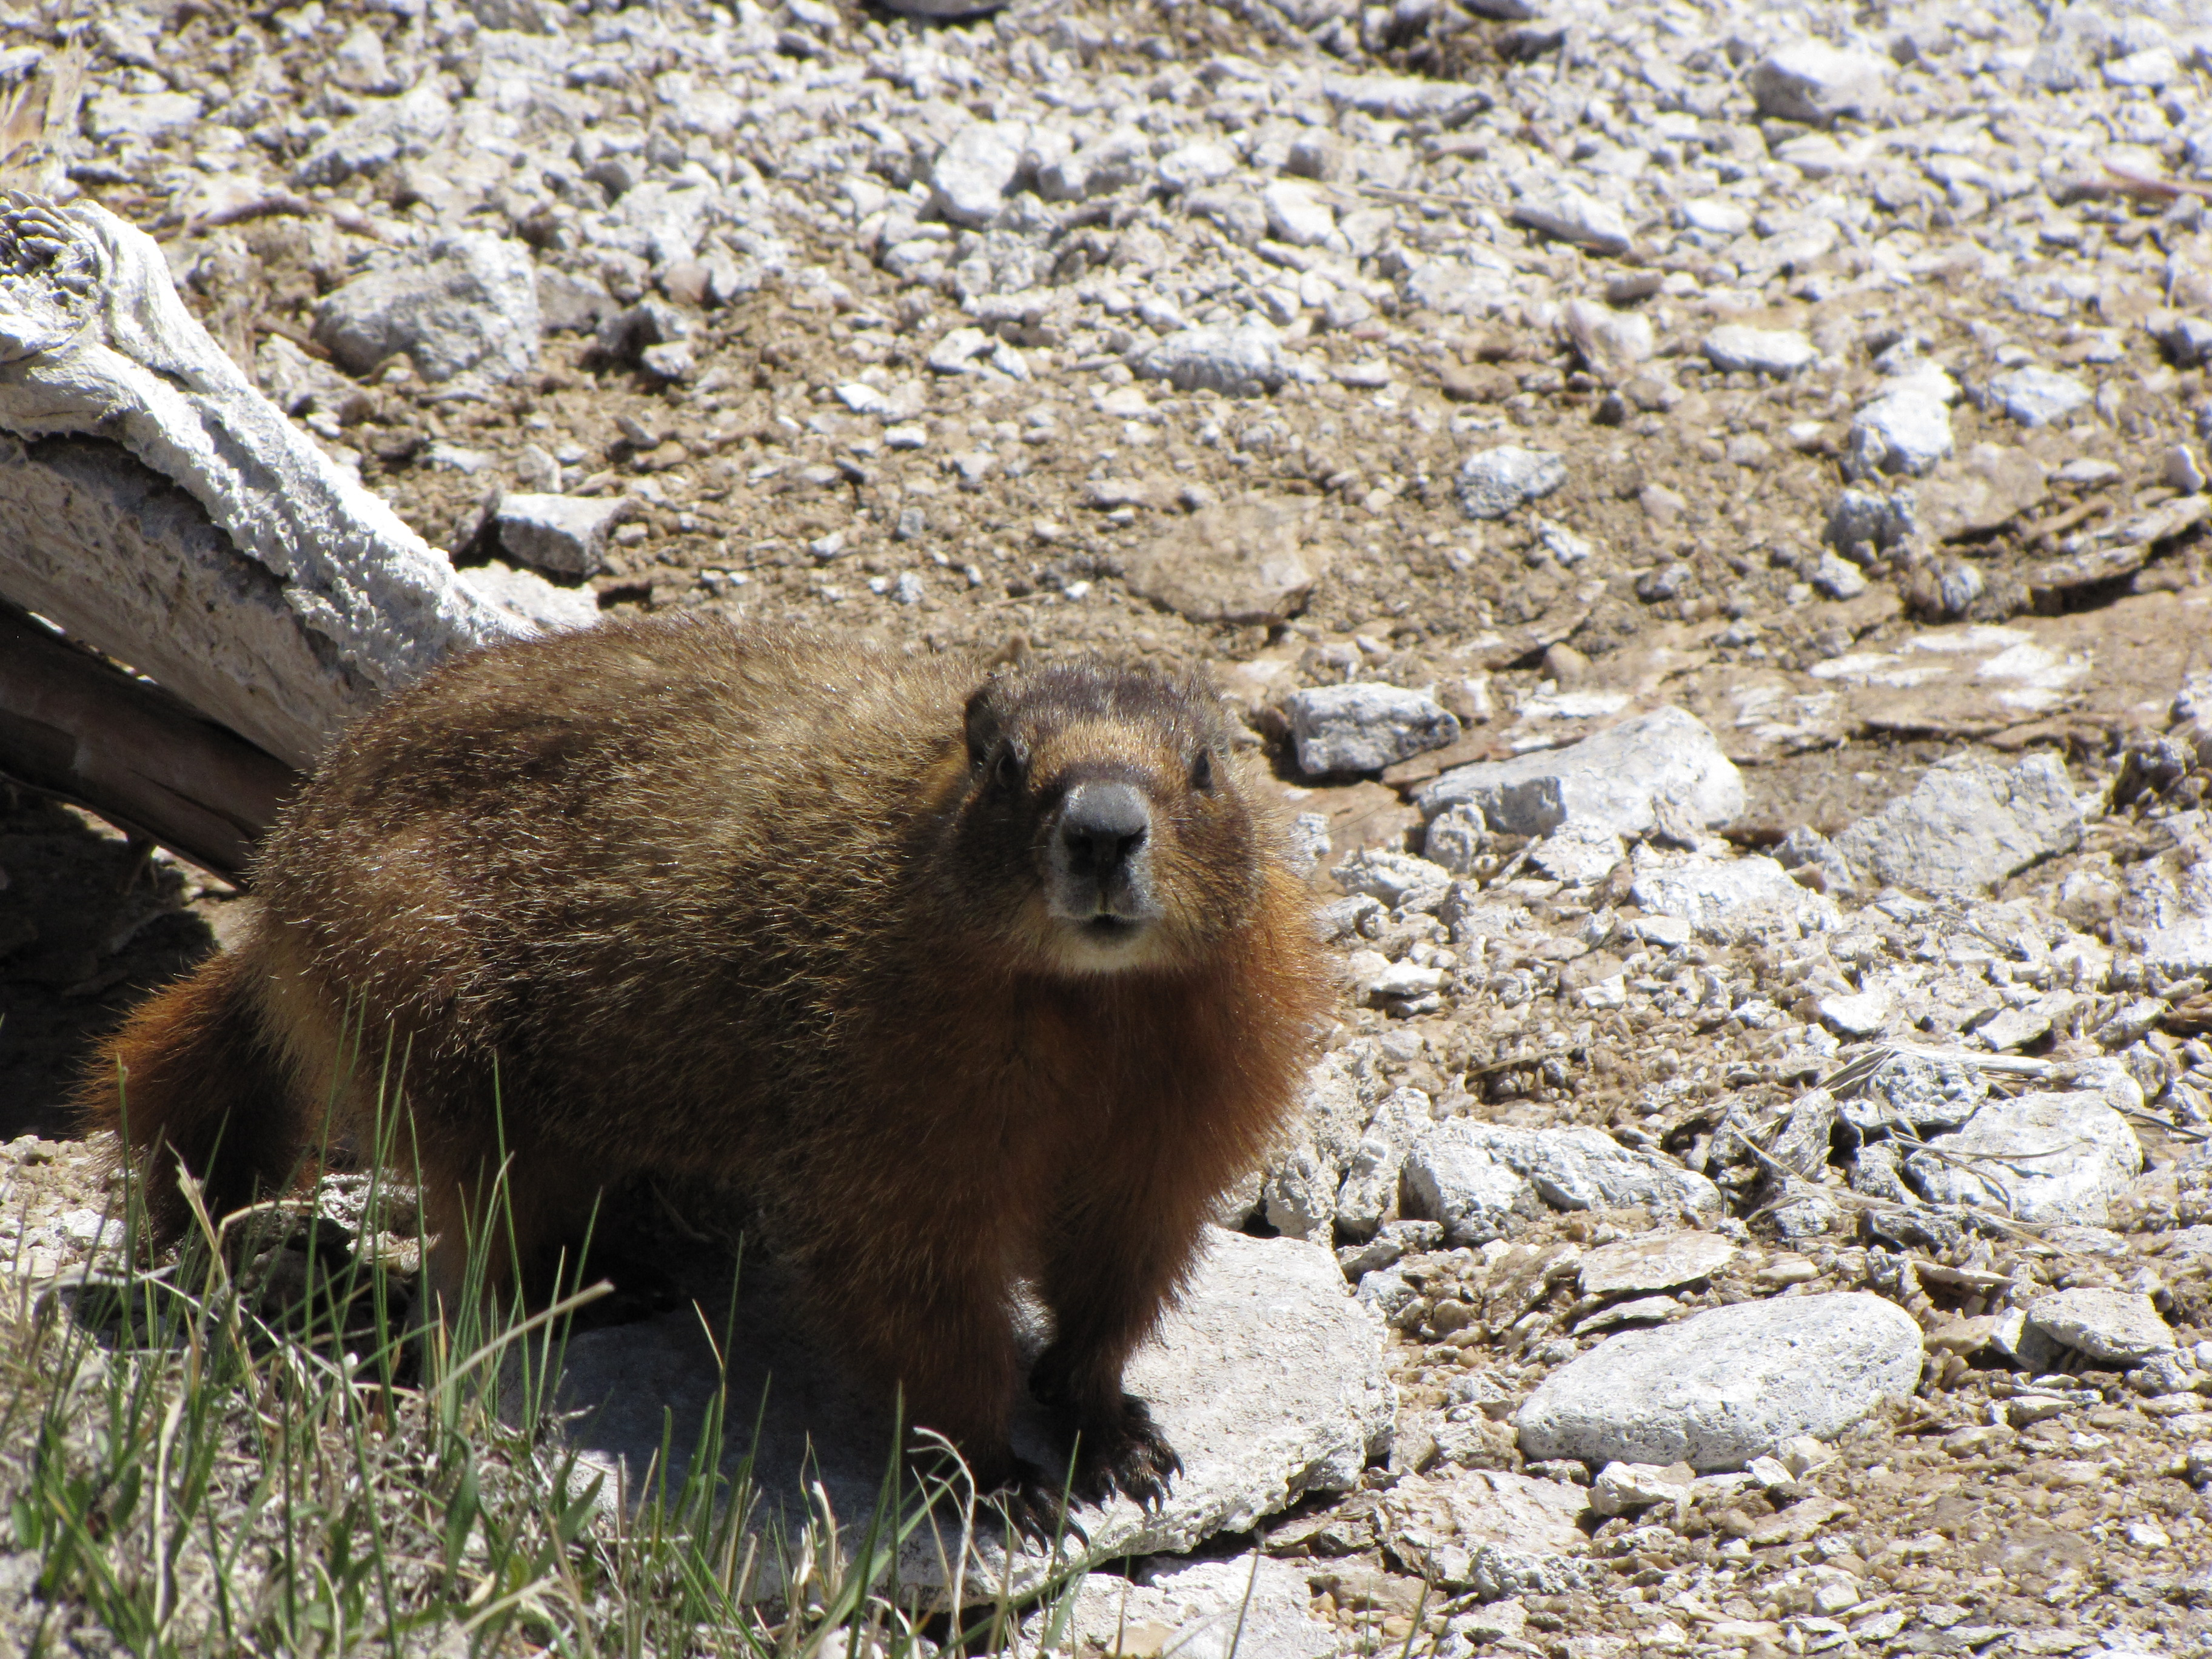 While walking around the geysers at the Old Faithful Inn in Yellowstone NP, I spotted a number of...